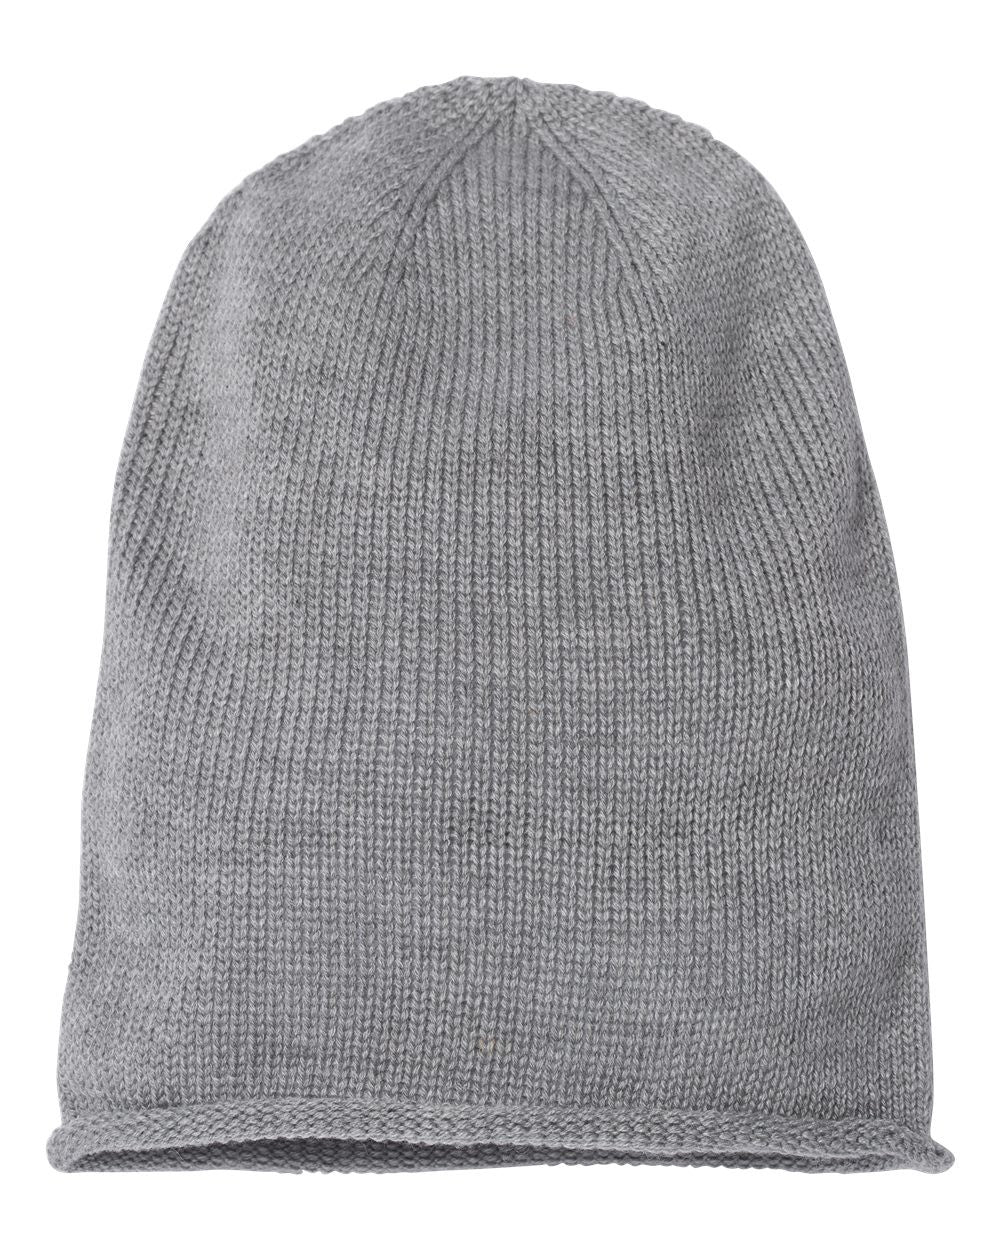 Fifty5 Clothing Super Soft Rolled Edge Slouch Beanie 12""